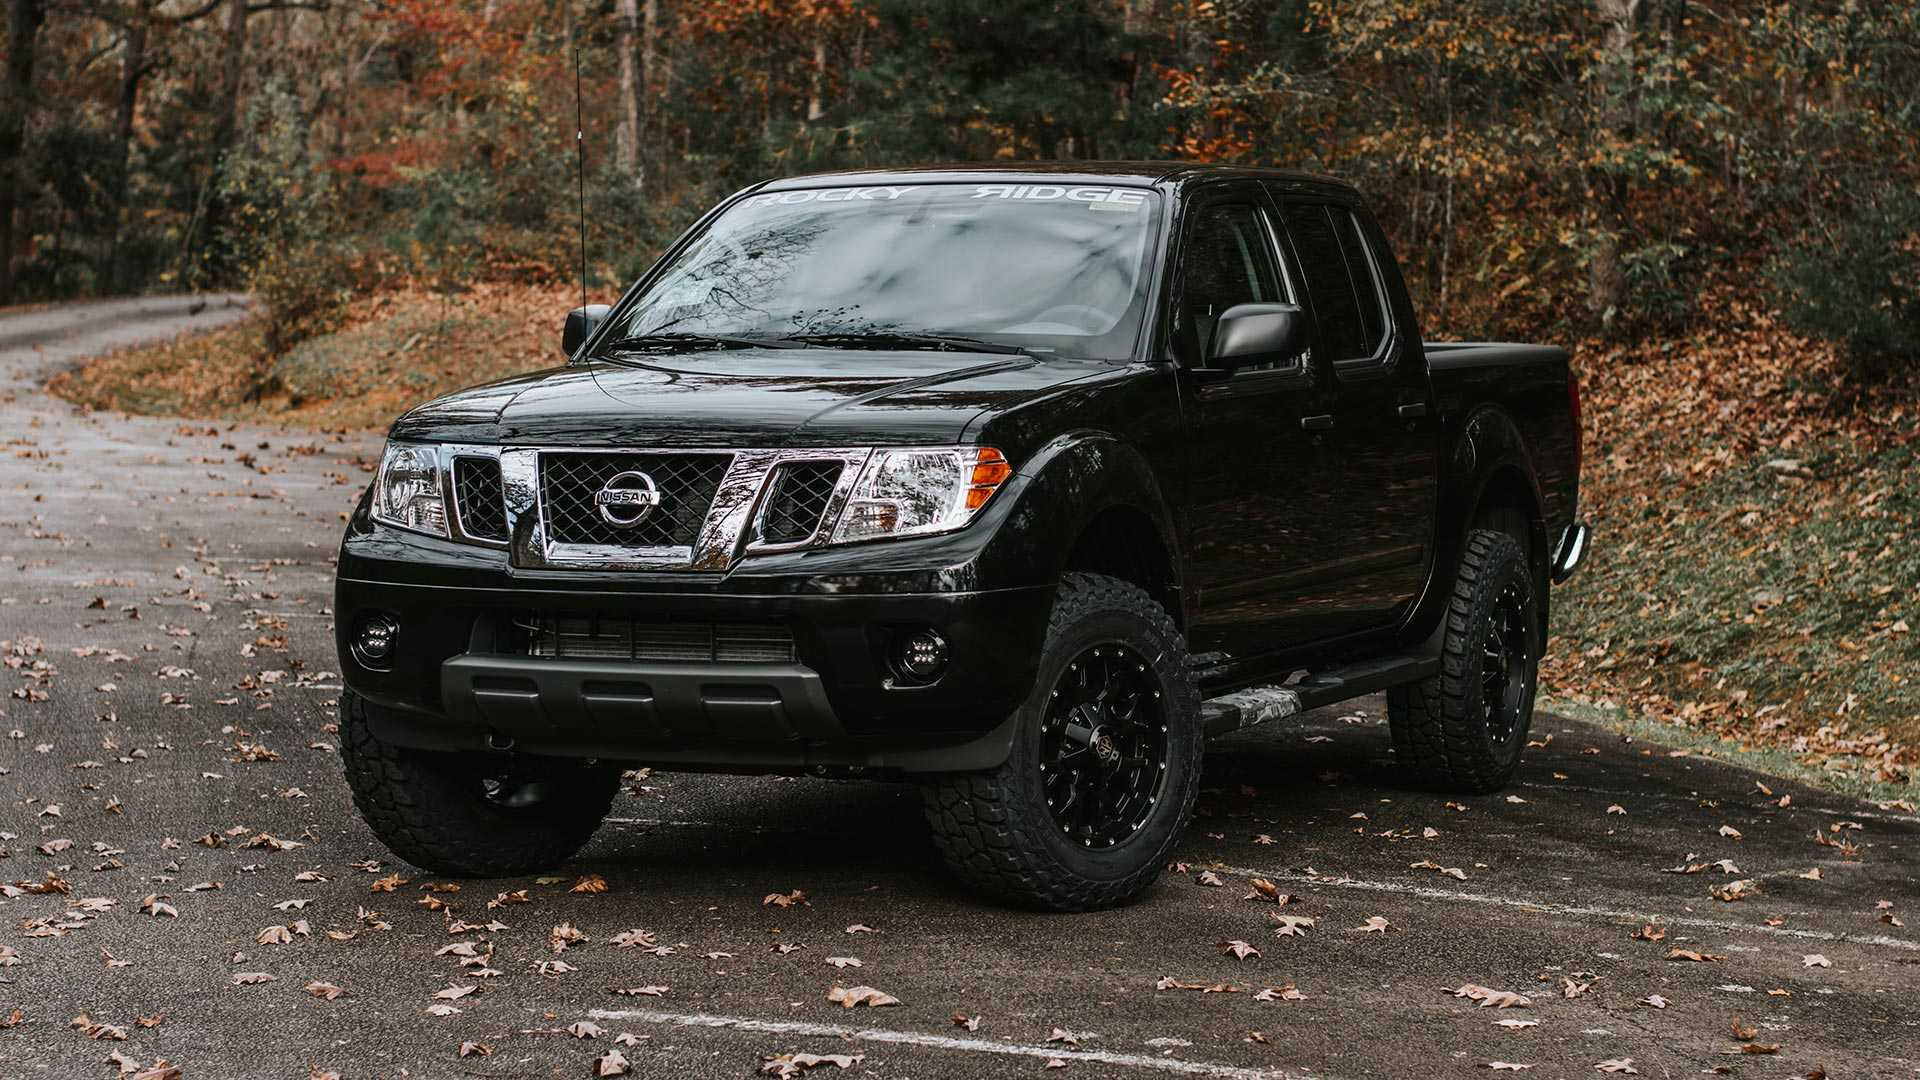 81 A 2020 Nissan Navara Specs And Review